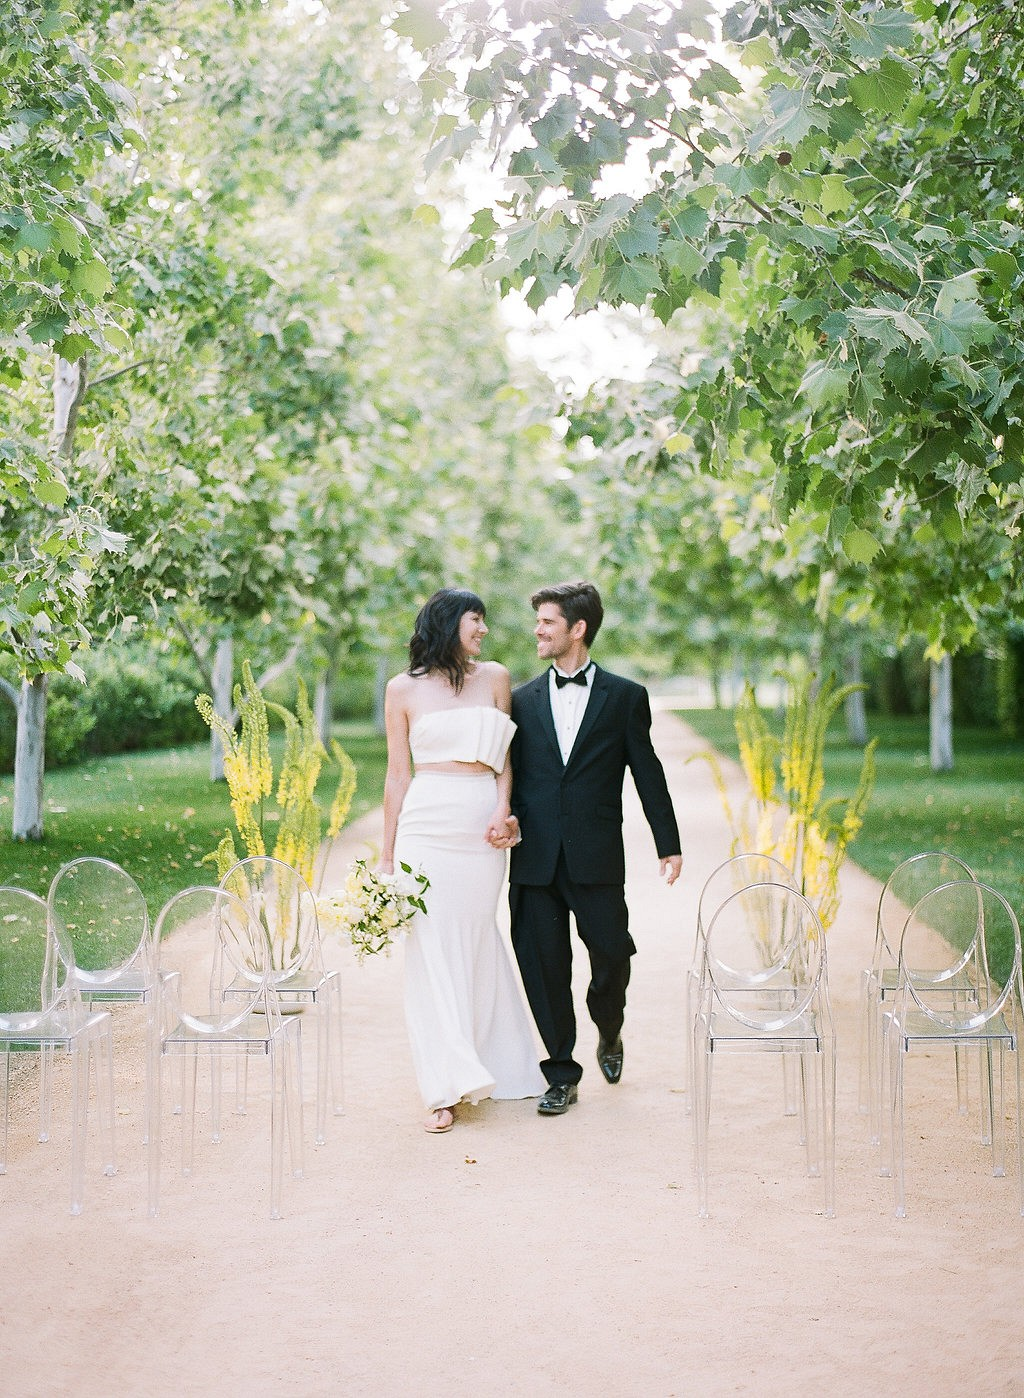 Summer Wedding Ideas with Pops of Yellow